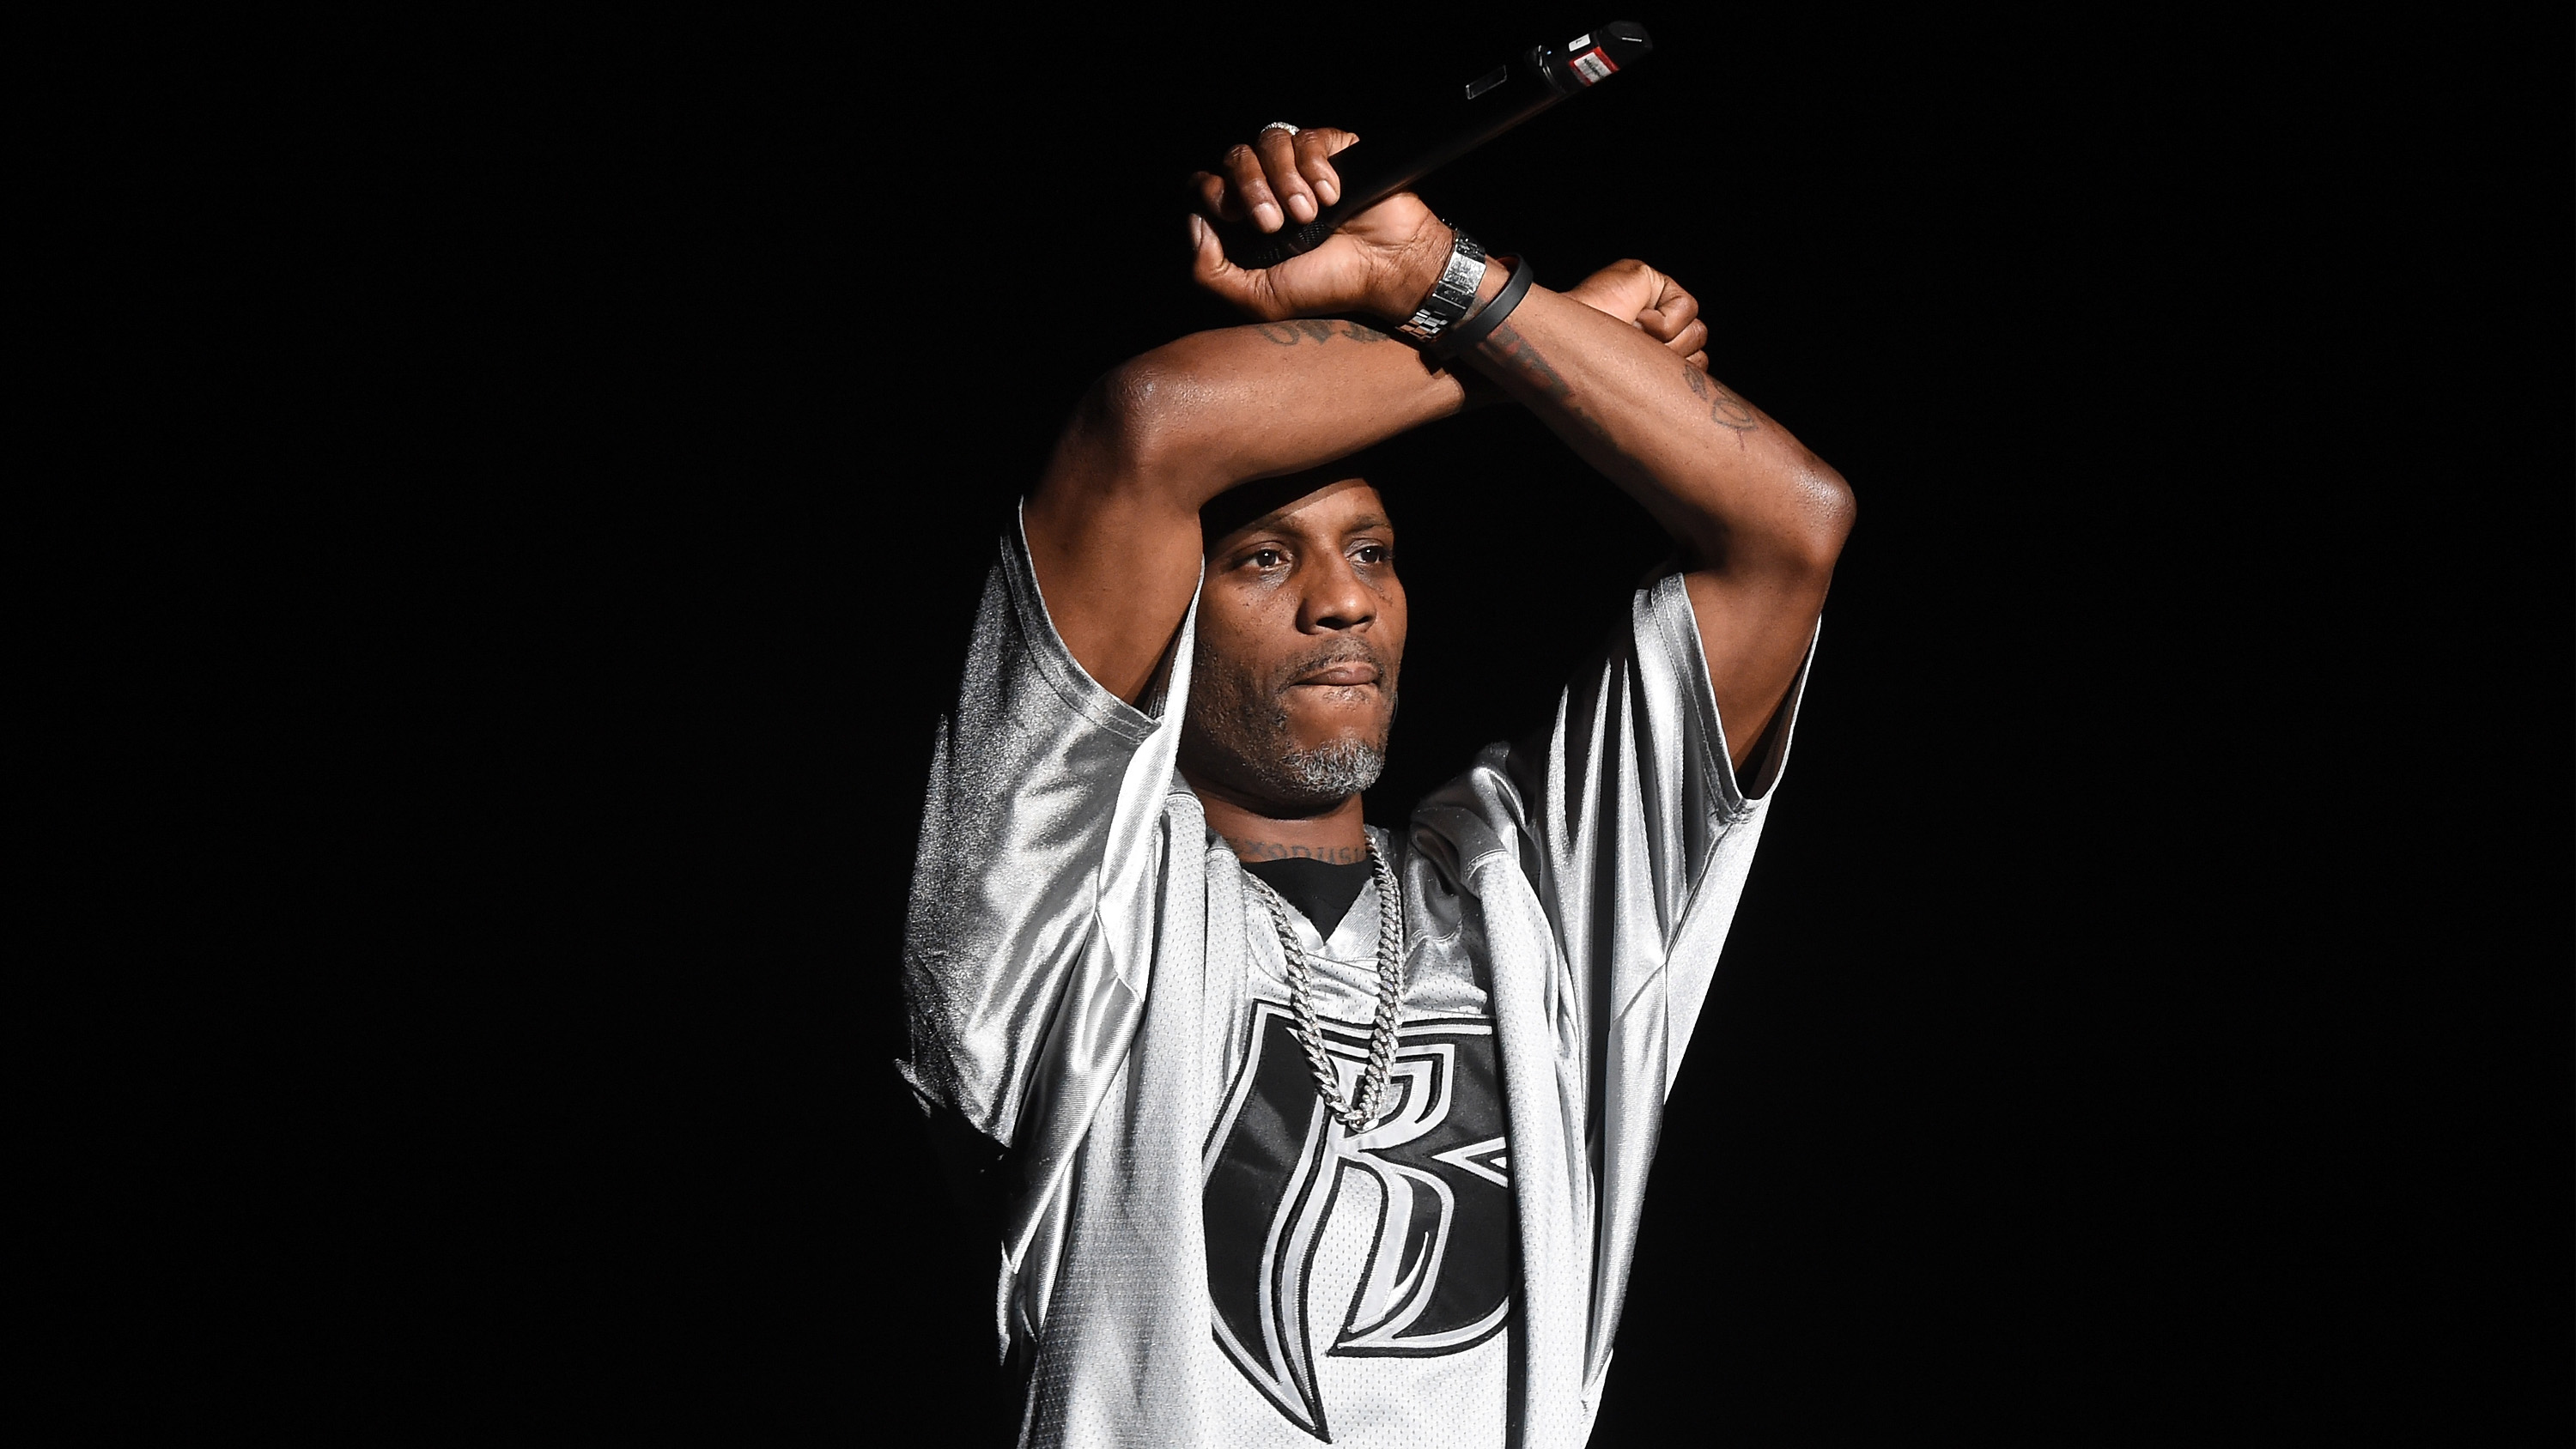 DMX: Prayer vigil held for the rapper as he remains hospitalized